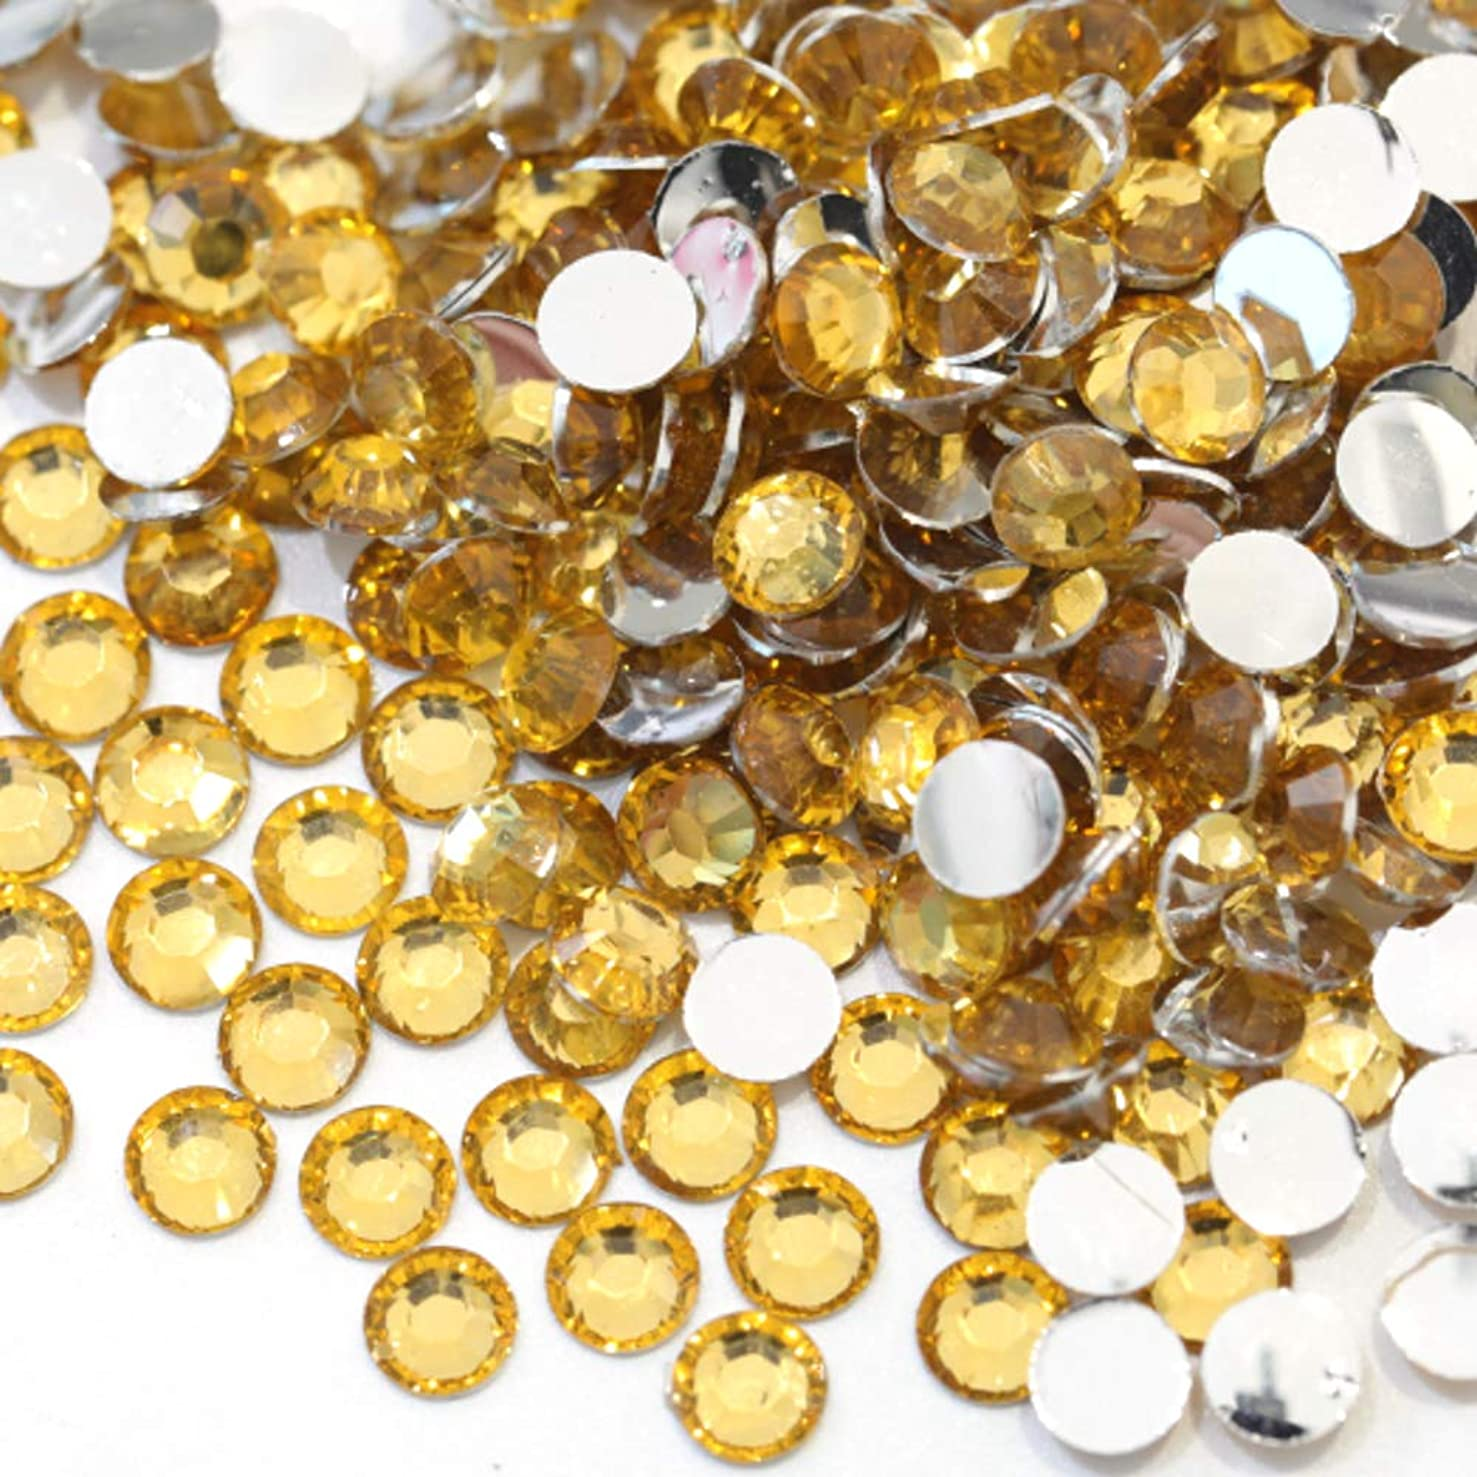 Zbella 3,000 Piece Resin 14-Facet Flat Back Round Rhinestones, Many Sizes and Colors for Crafts, Clothing, Nail Art, Decorations, Shoes, and Clothes (5mm, Topaz)